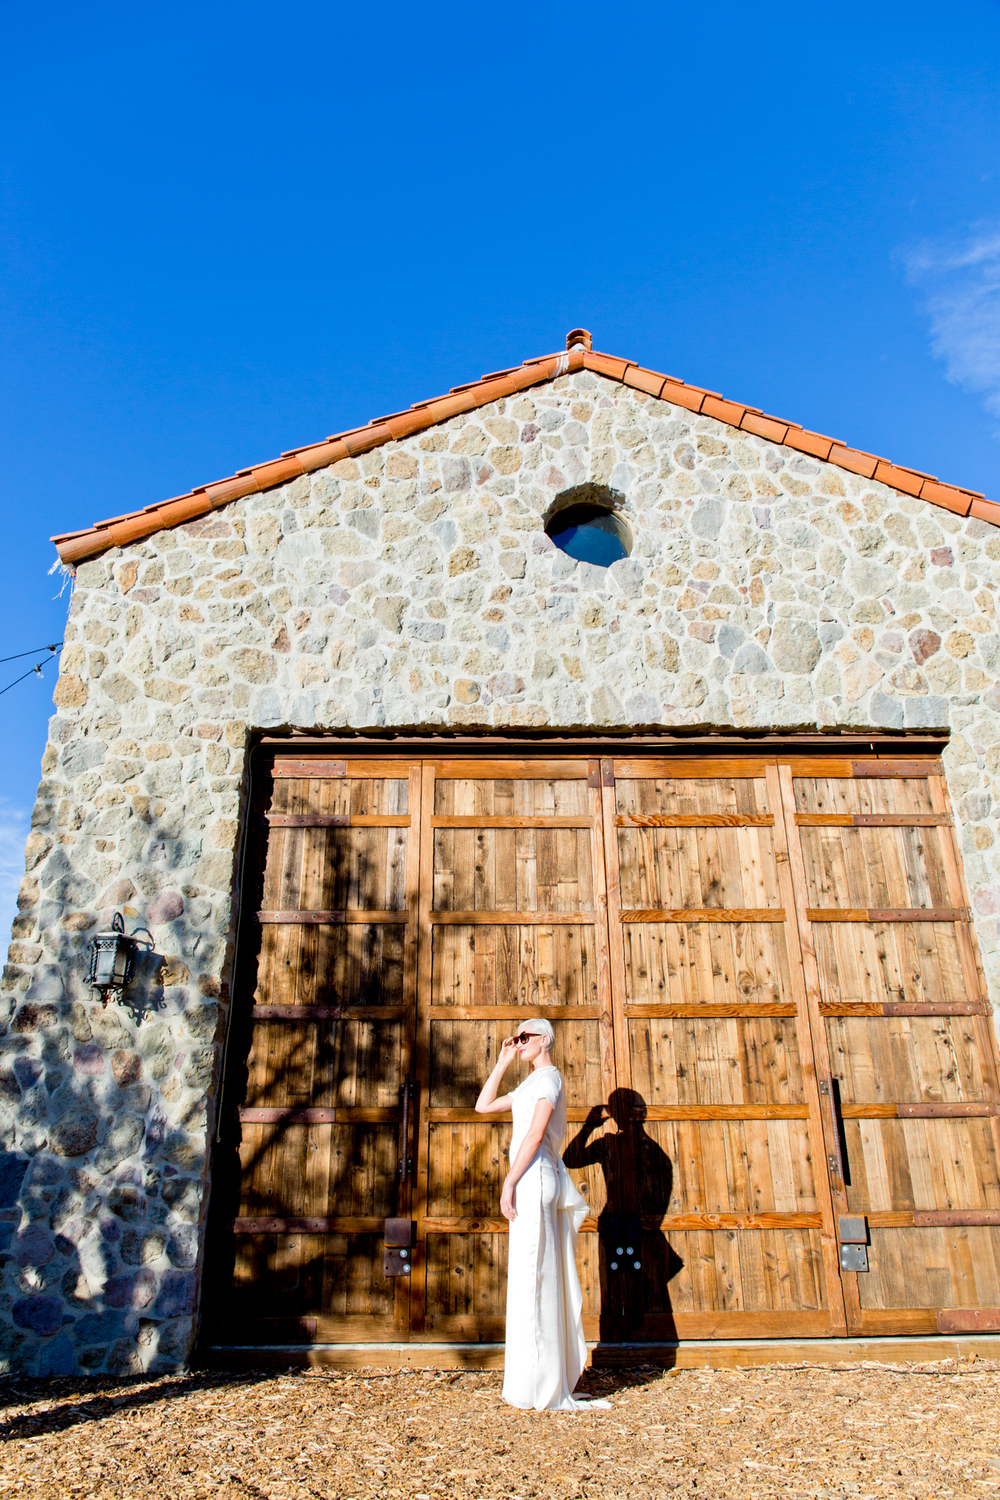 021_CarlyGaebe_SteadfastStudio_WeddingPhotography_Malibu_LosAngeles_LA_California_Winery_Hilltop_CieloFarms_LanvinDress_Bride_Vineyard.jpg